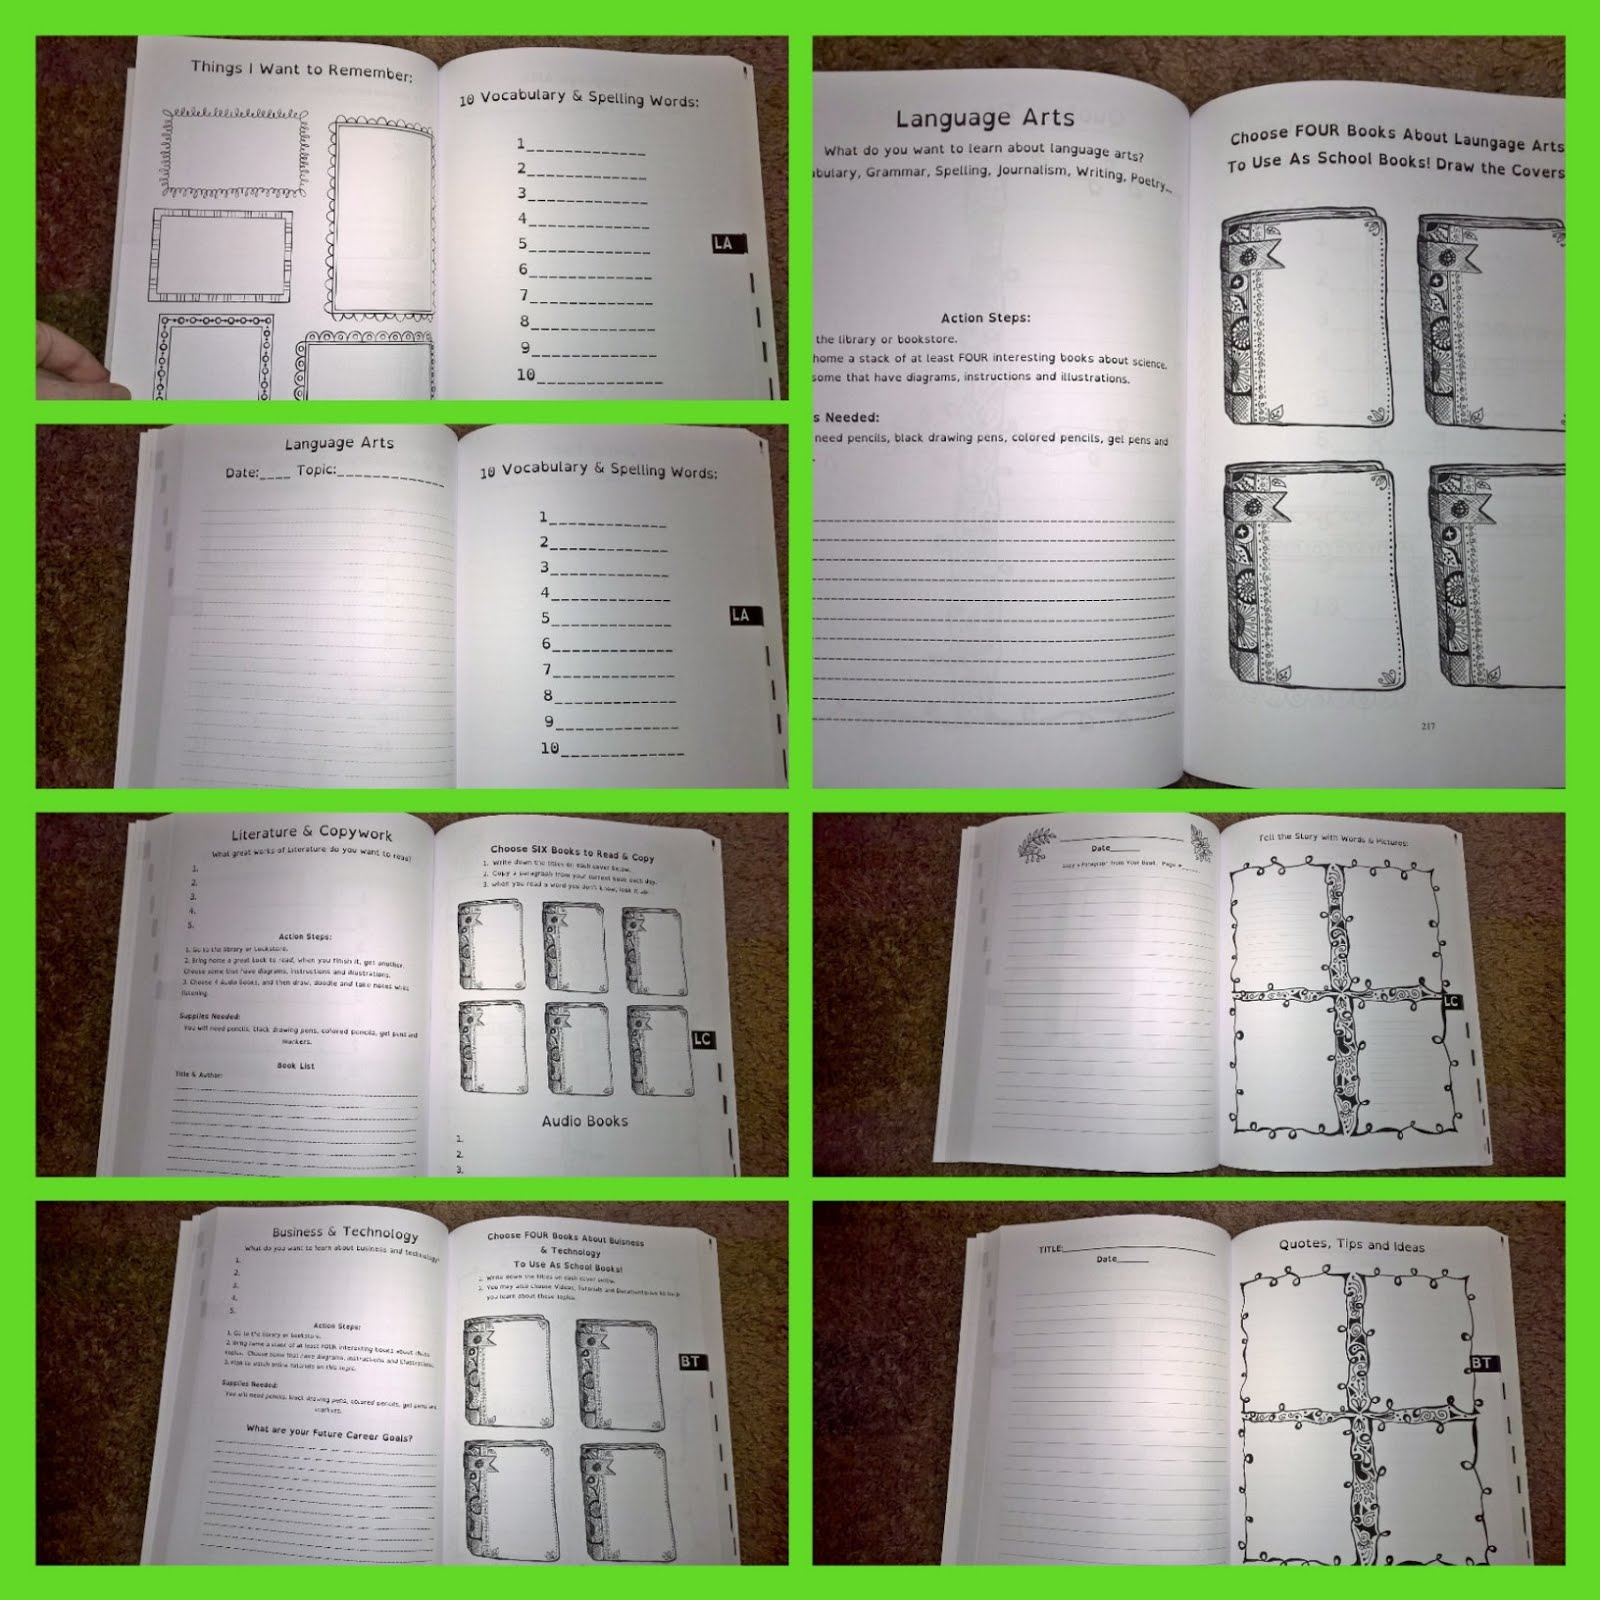 Its a good full journals and books from the thinking tree ages 3 to 7 fun schooling journal do it yourself homeschooling for beginners homeschool prep book for new readers and non readers solutioingenieria Choice Image